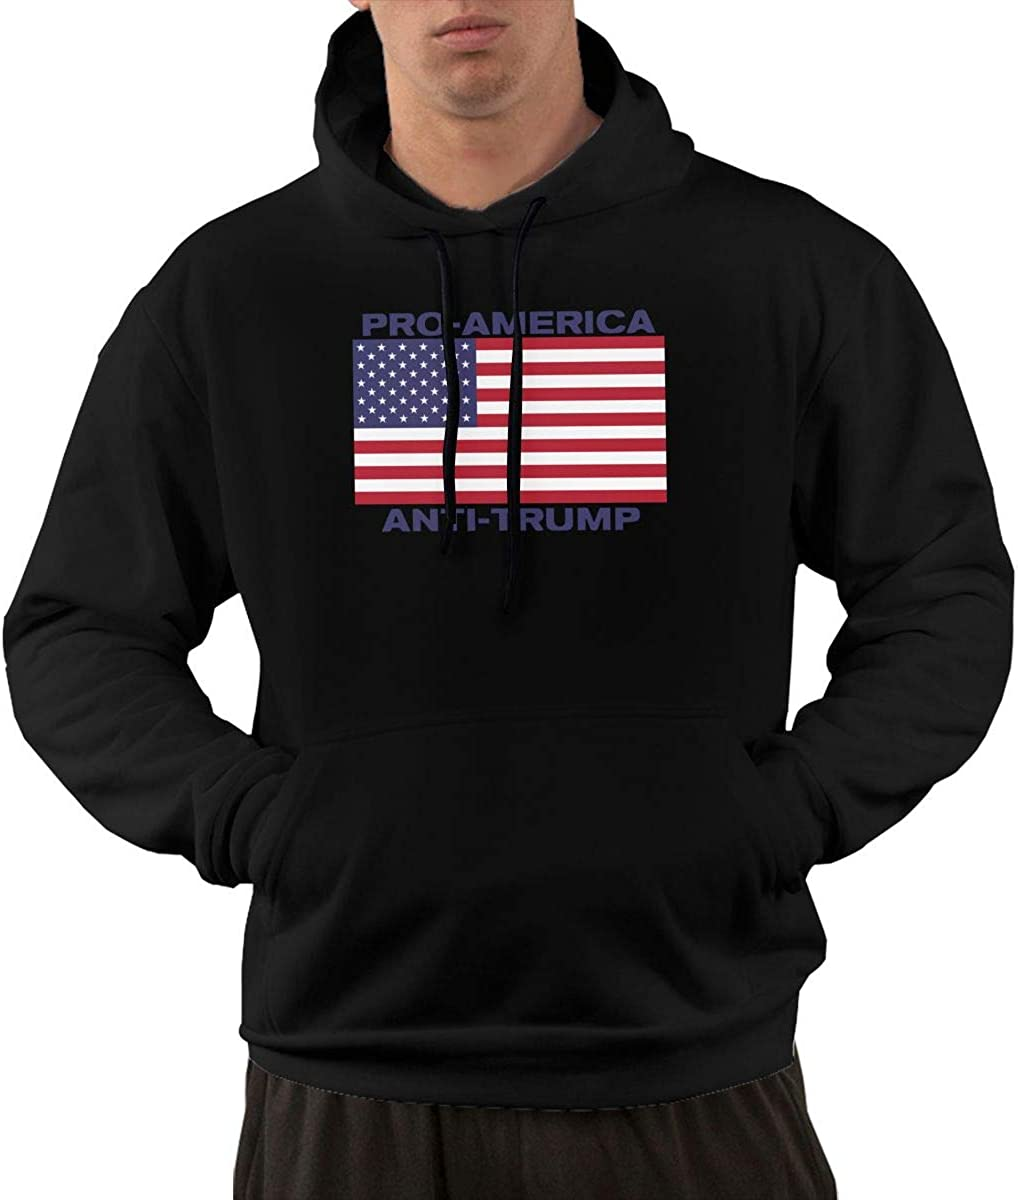 Mens Pro America Anti-Trump Hooded Fleece Sweatshirt